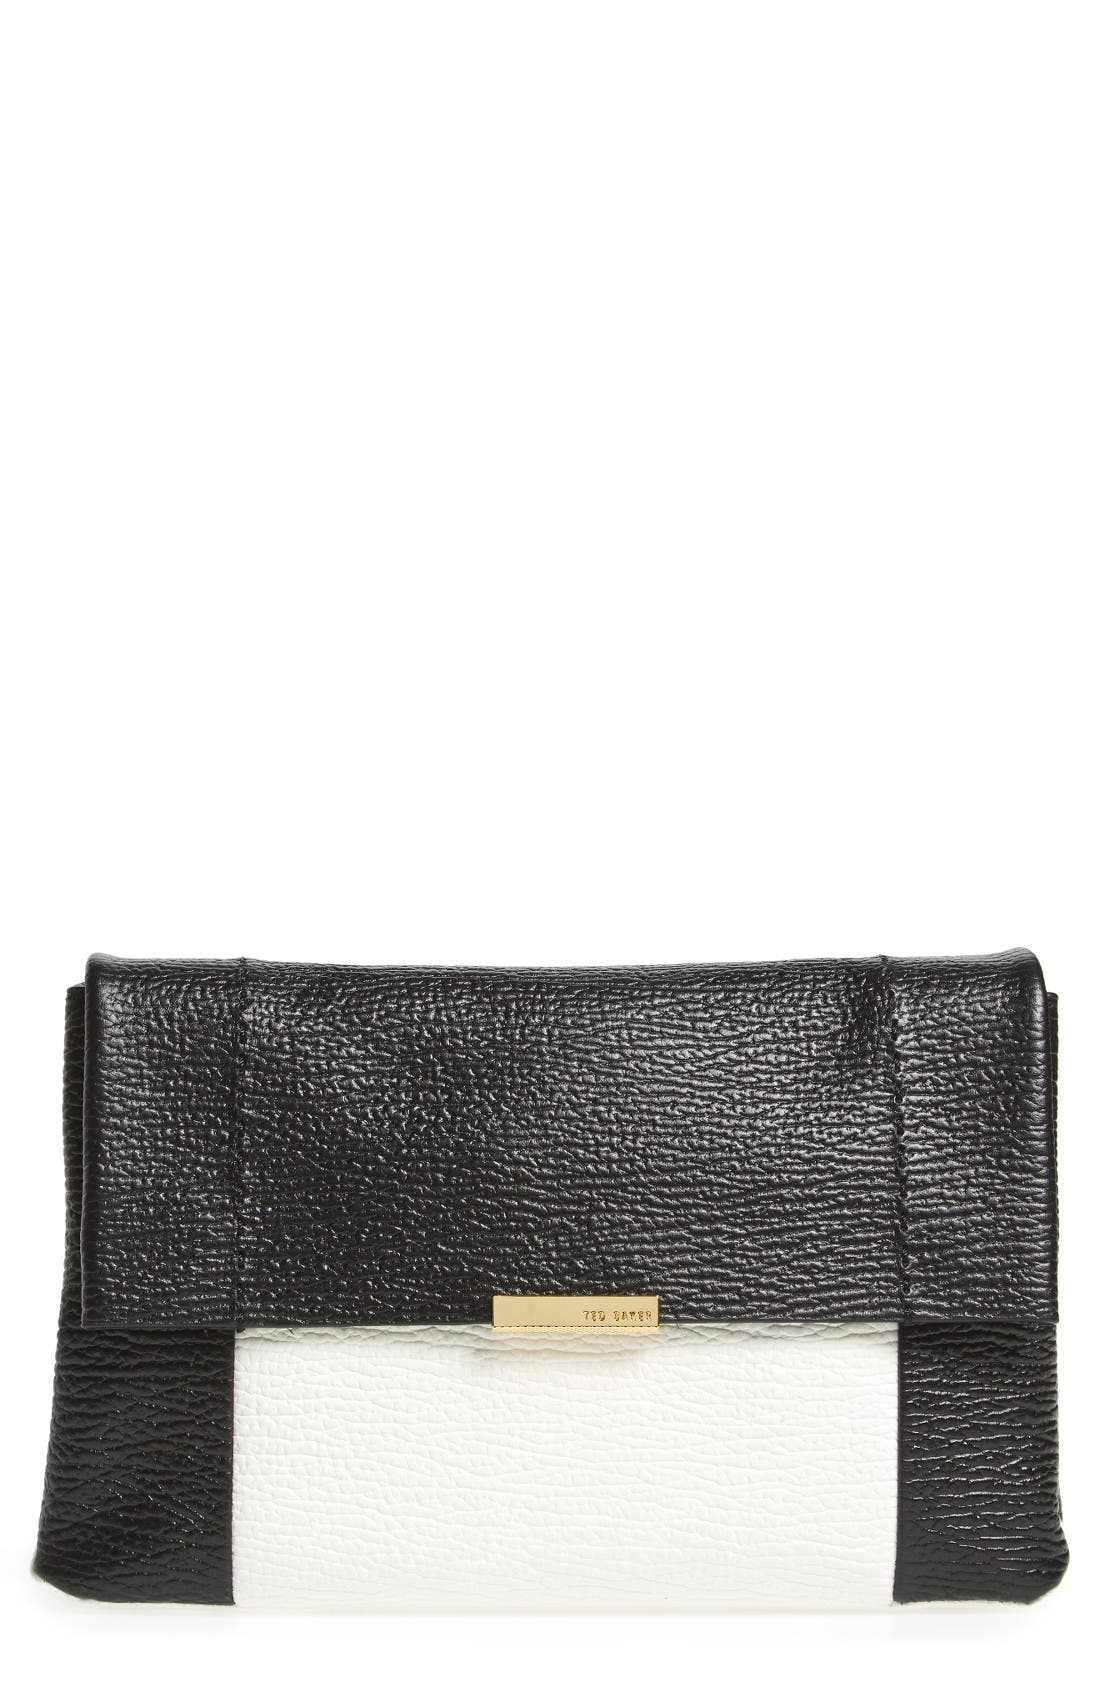 Alternate Image 1 Selected - Ted Baker London Parson Leather Crossbody Bag